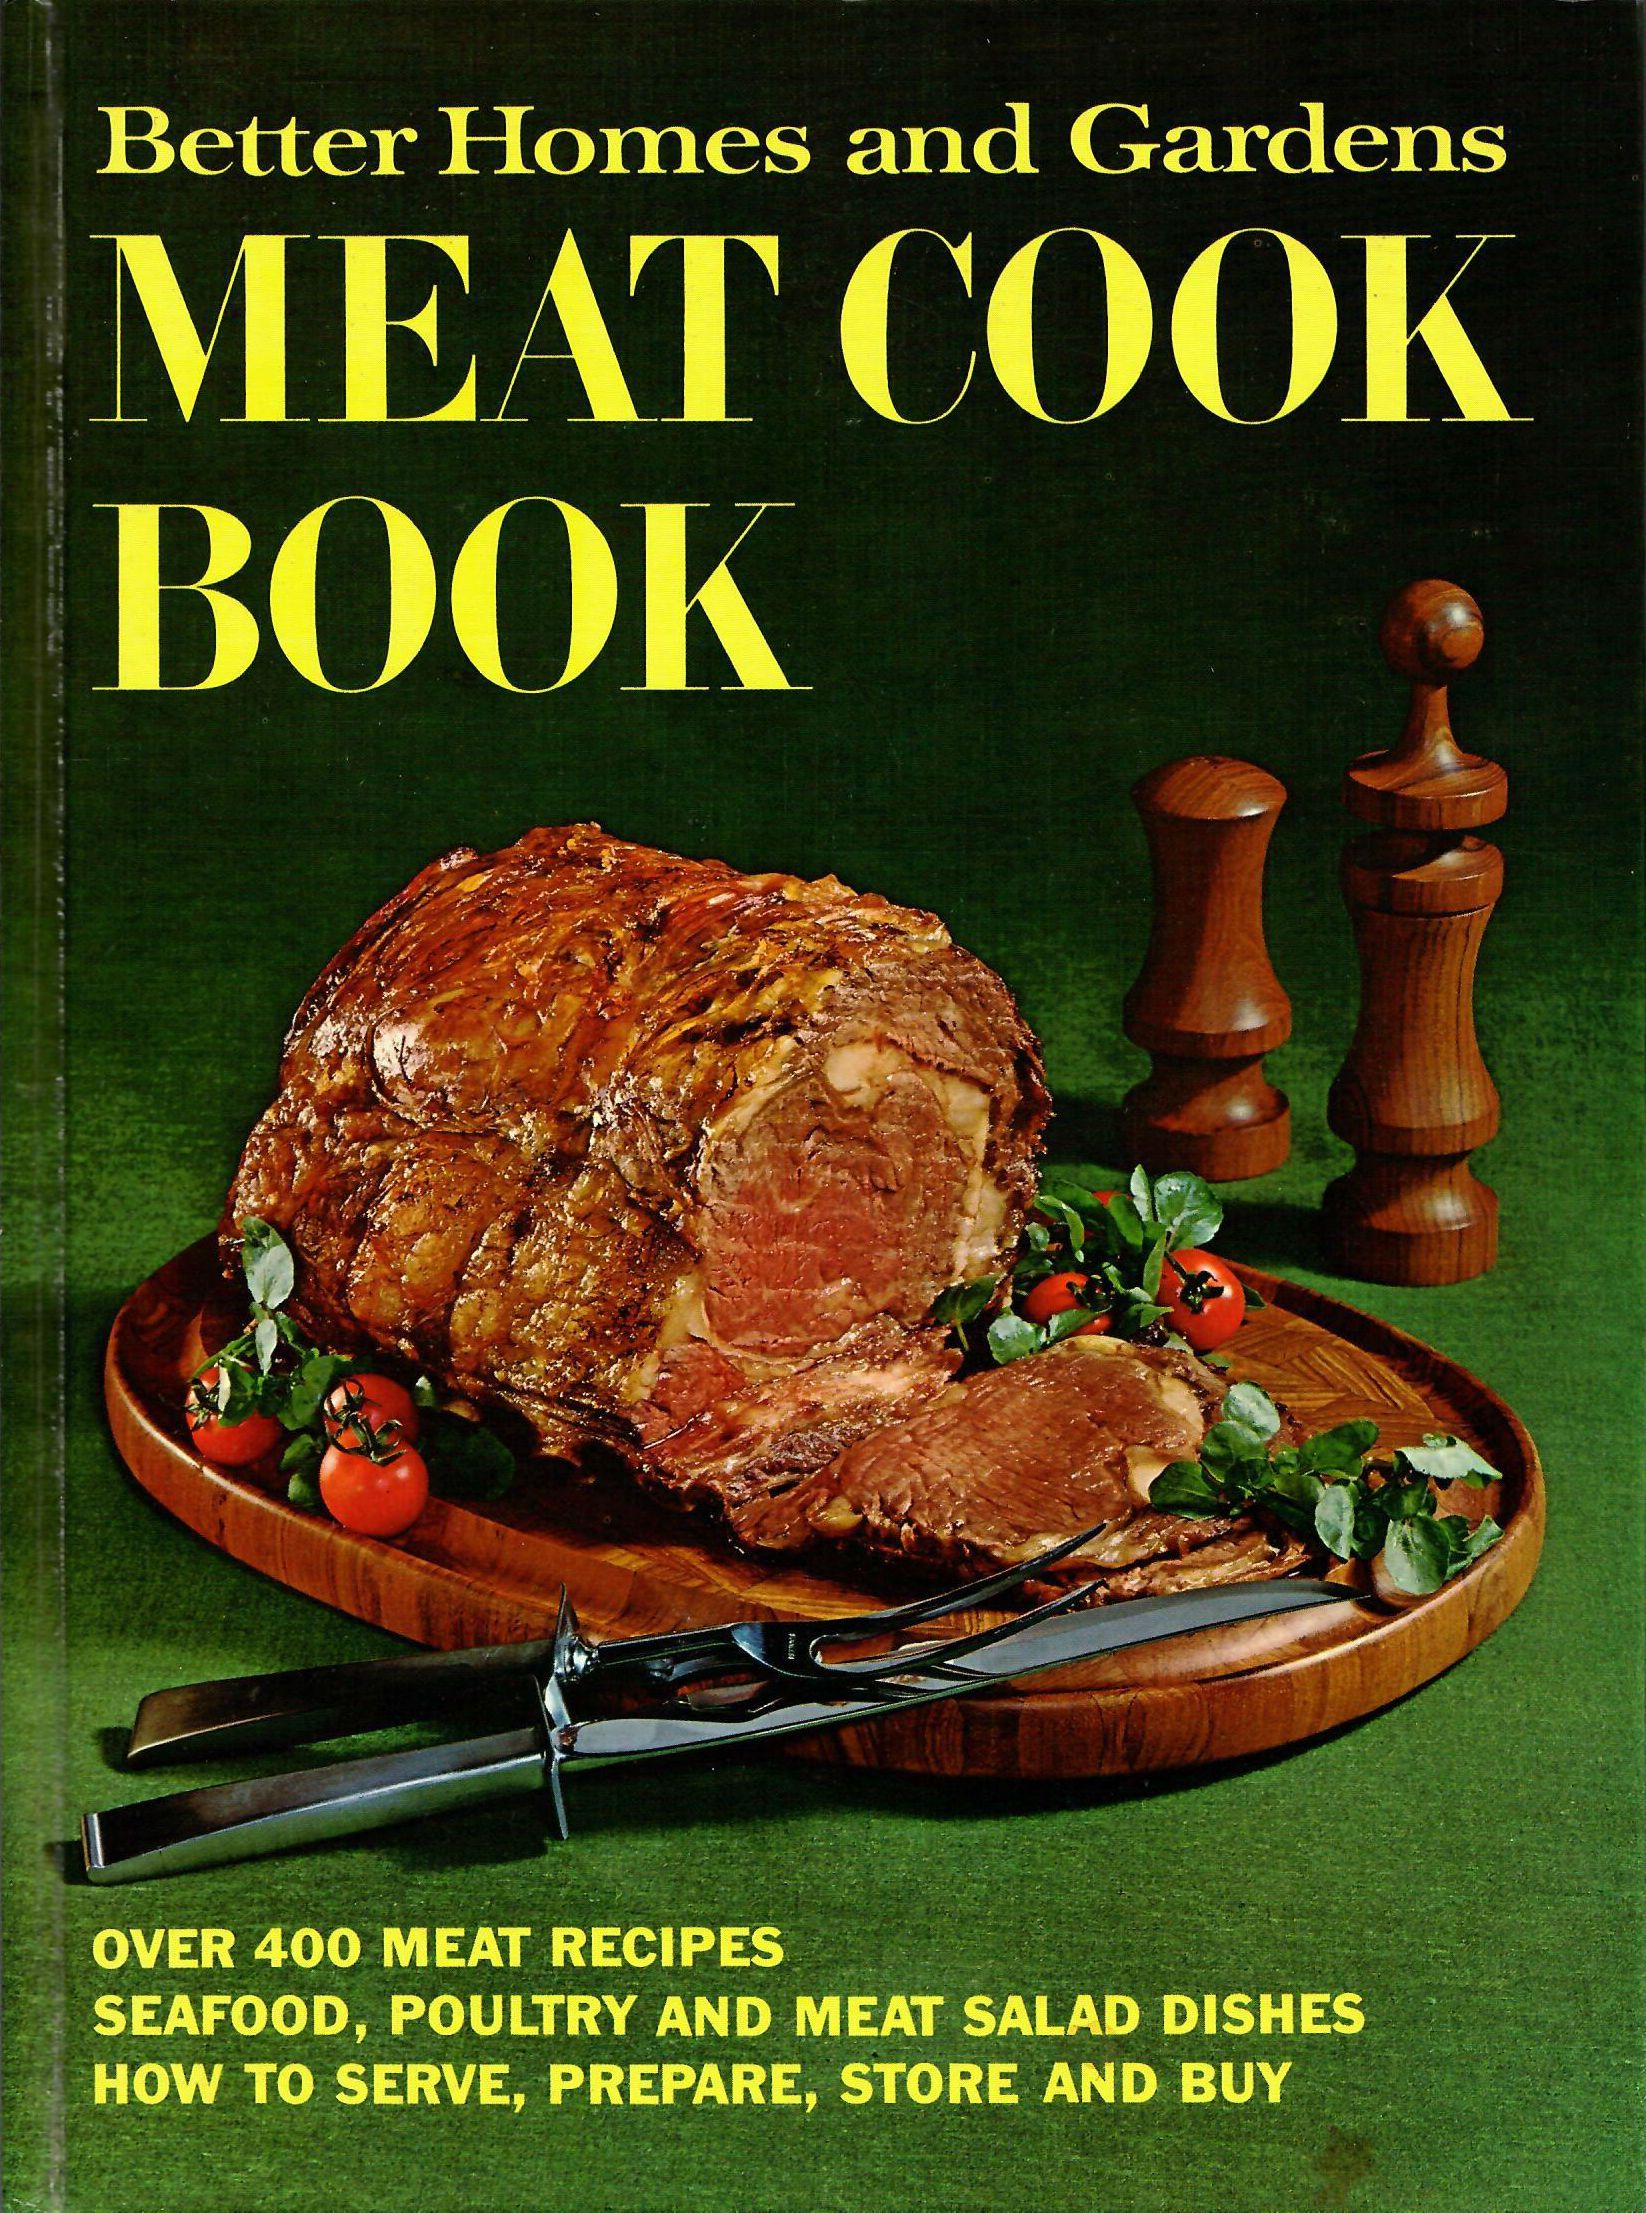 Better Homes and Gardens Meat Cook Book. Originally